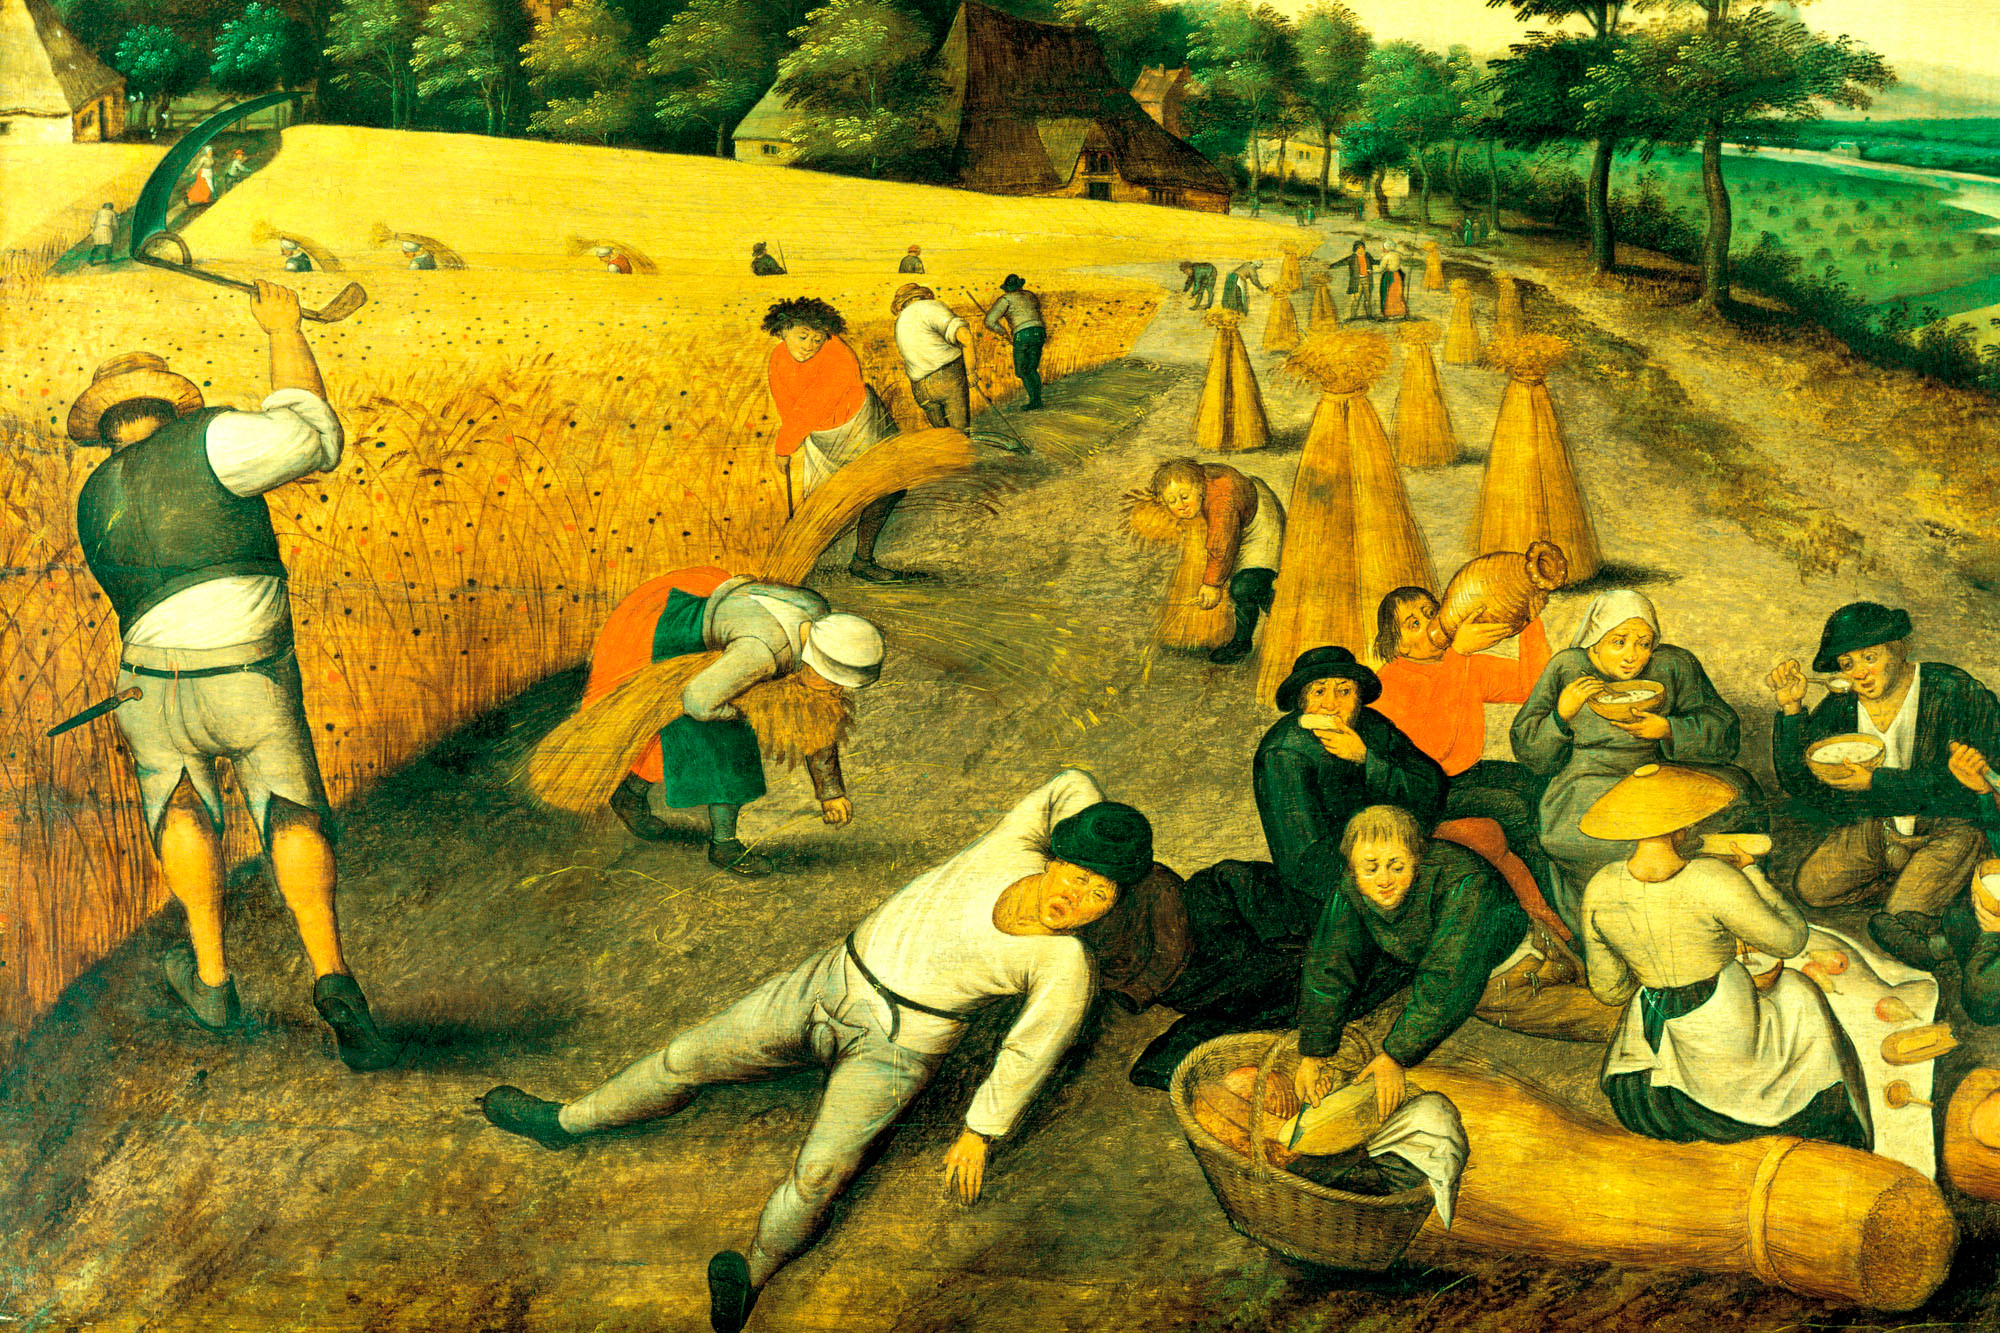 bruegel_peasants.jpg